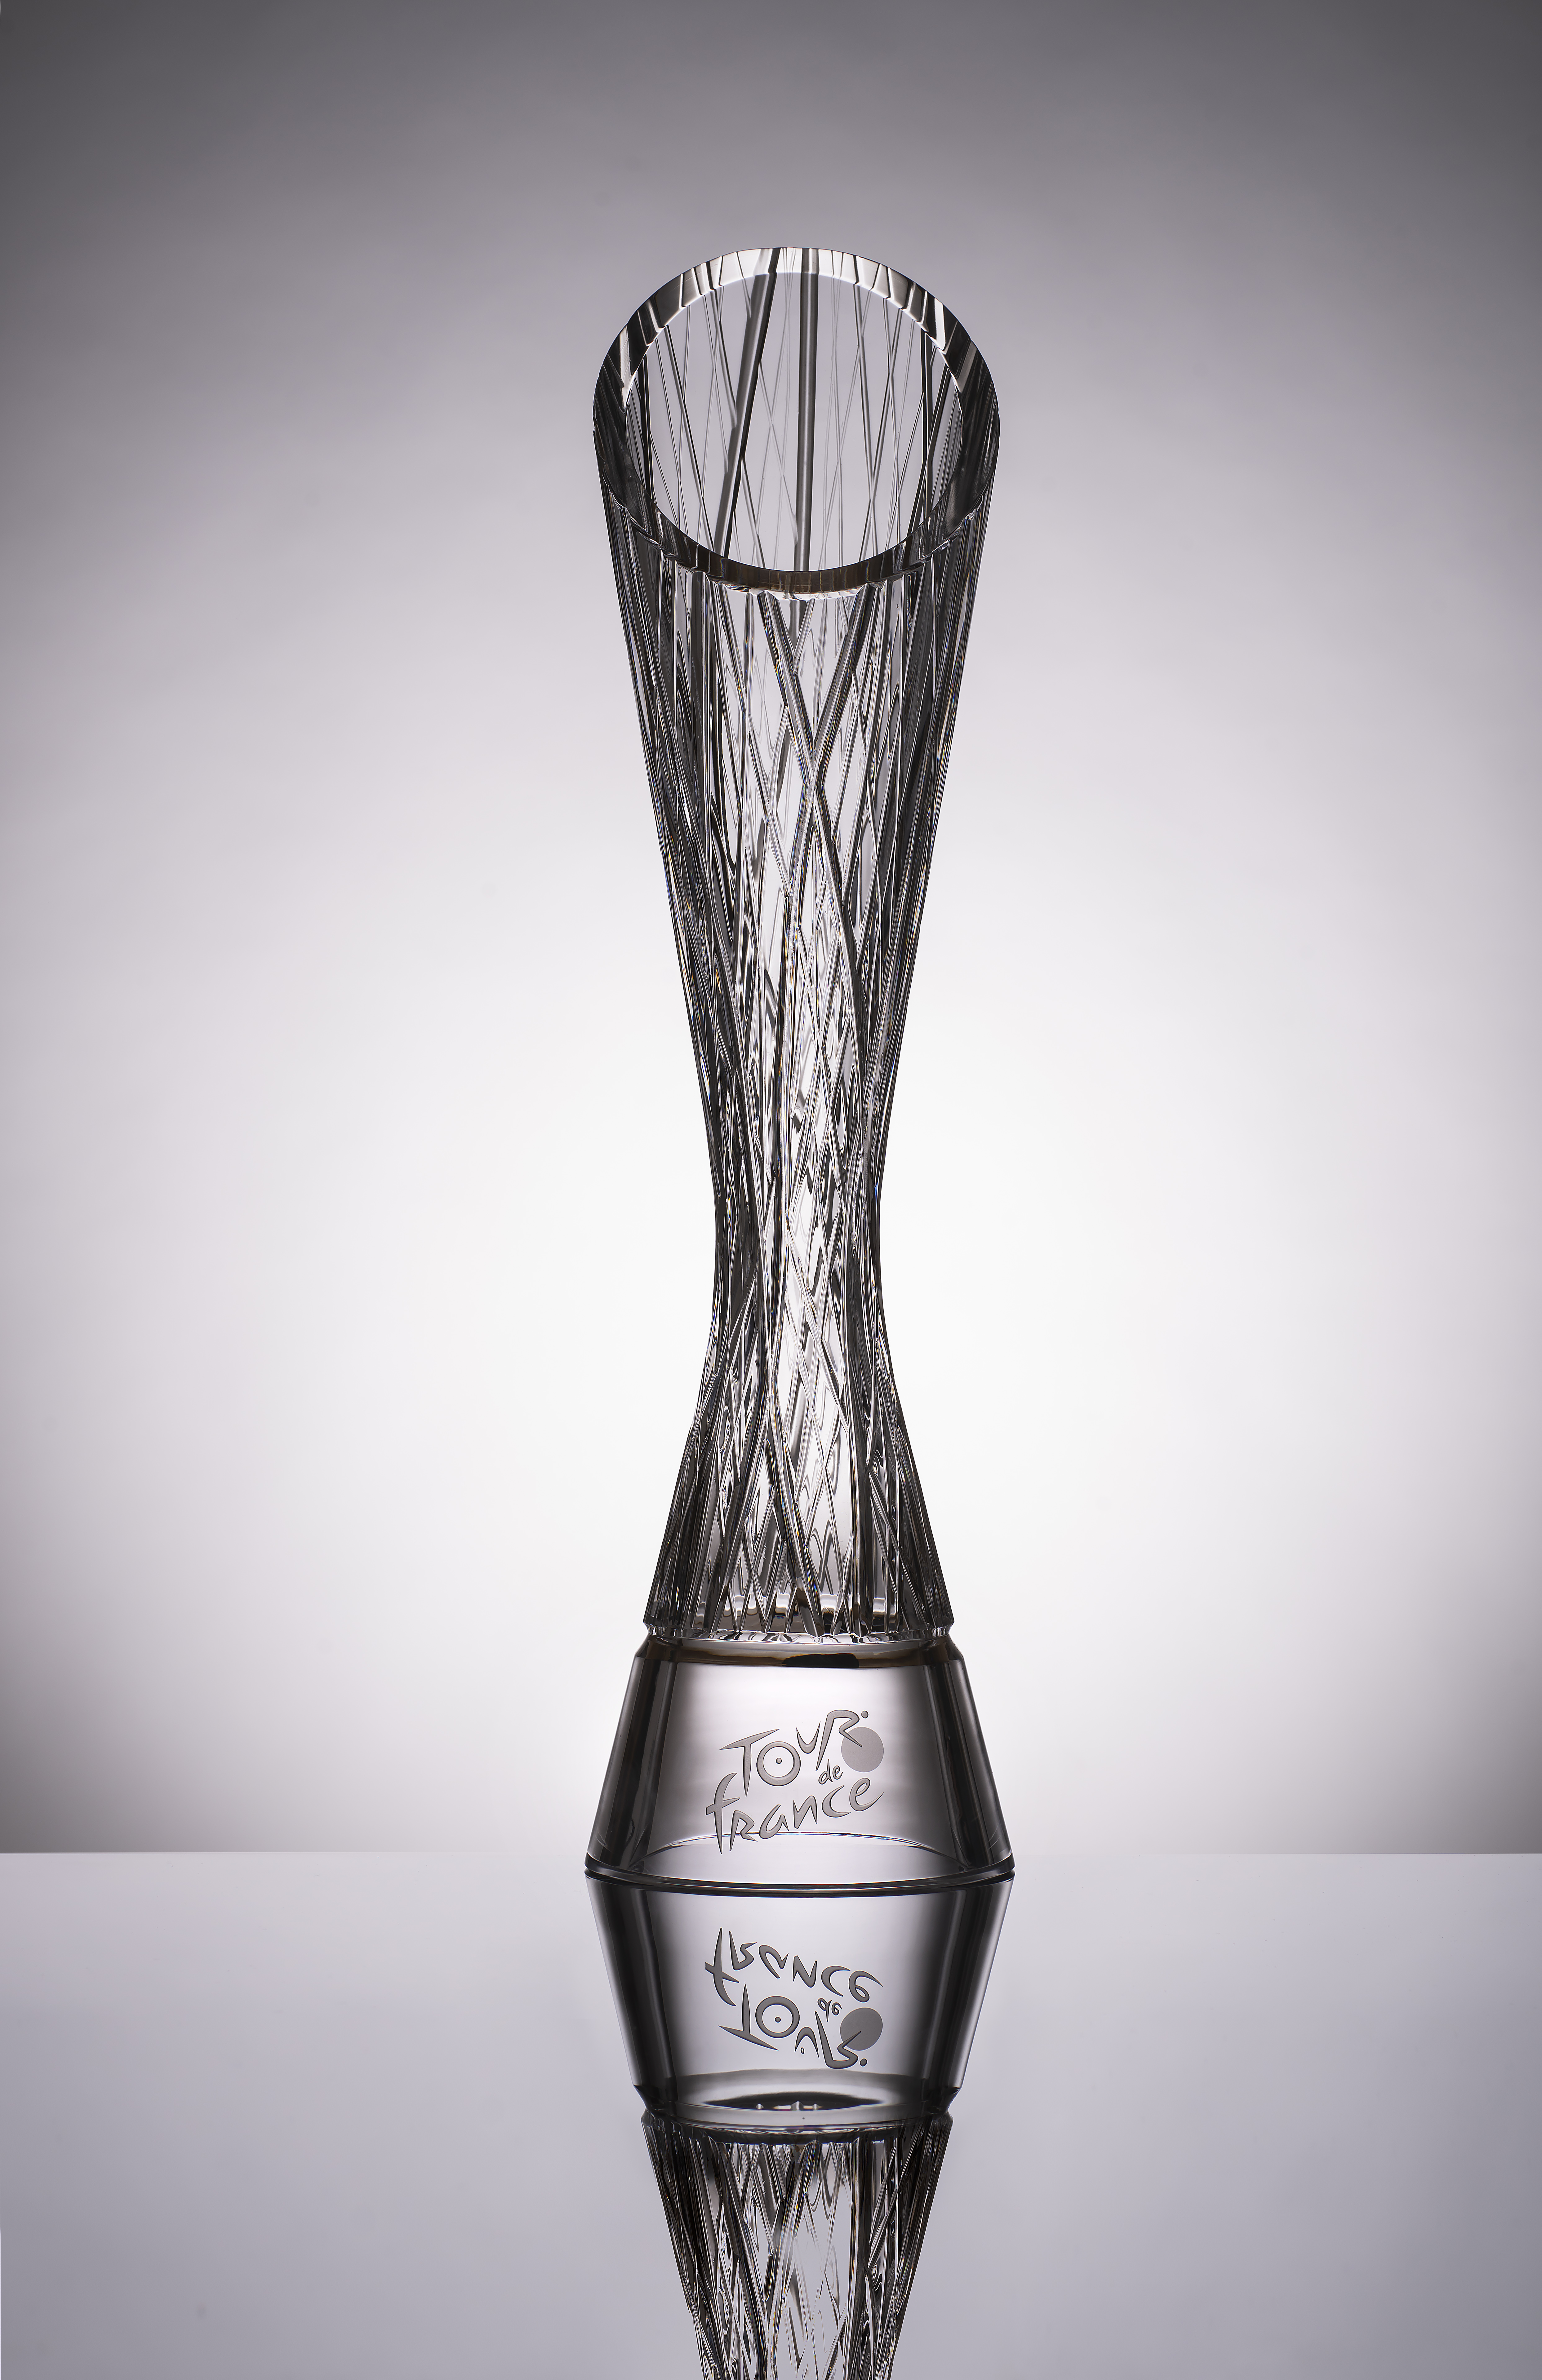 Winner of the 108th Tour de France Tadej Pogačar presented with crystal glass trophy by SKODA AUTO - Image 1